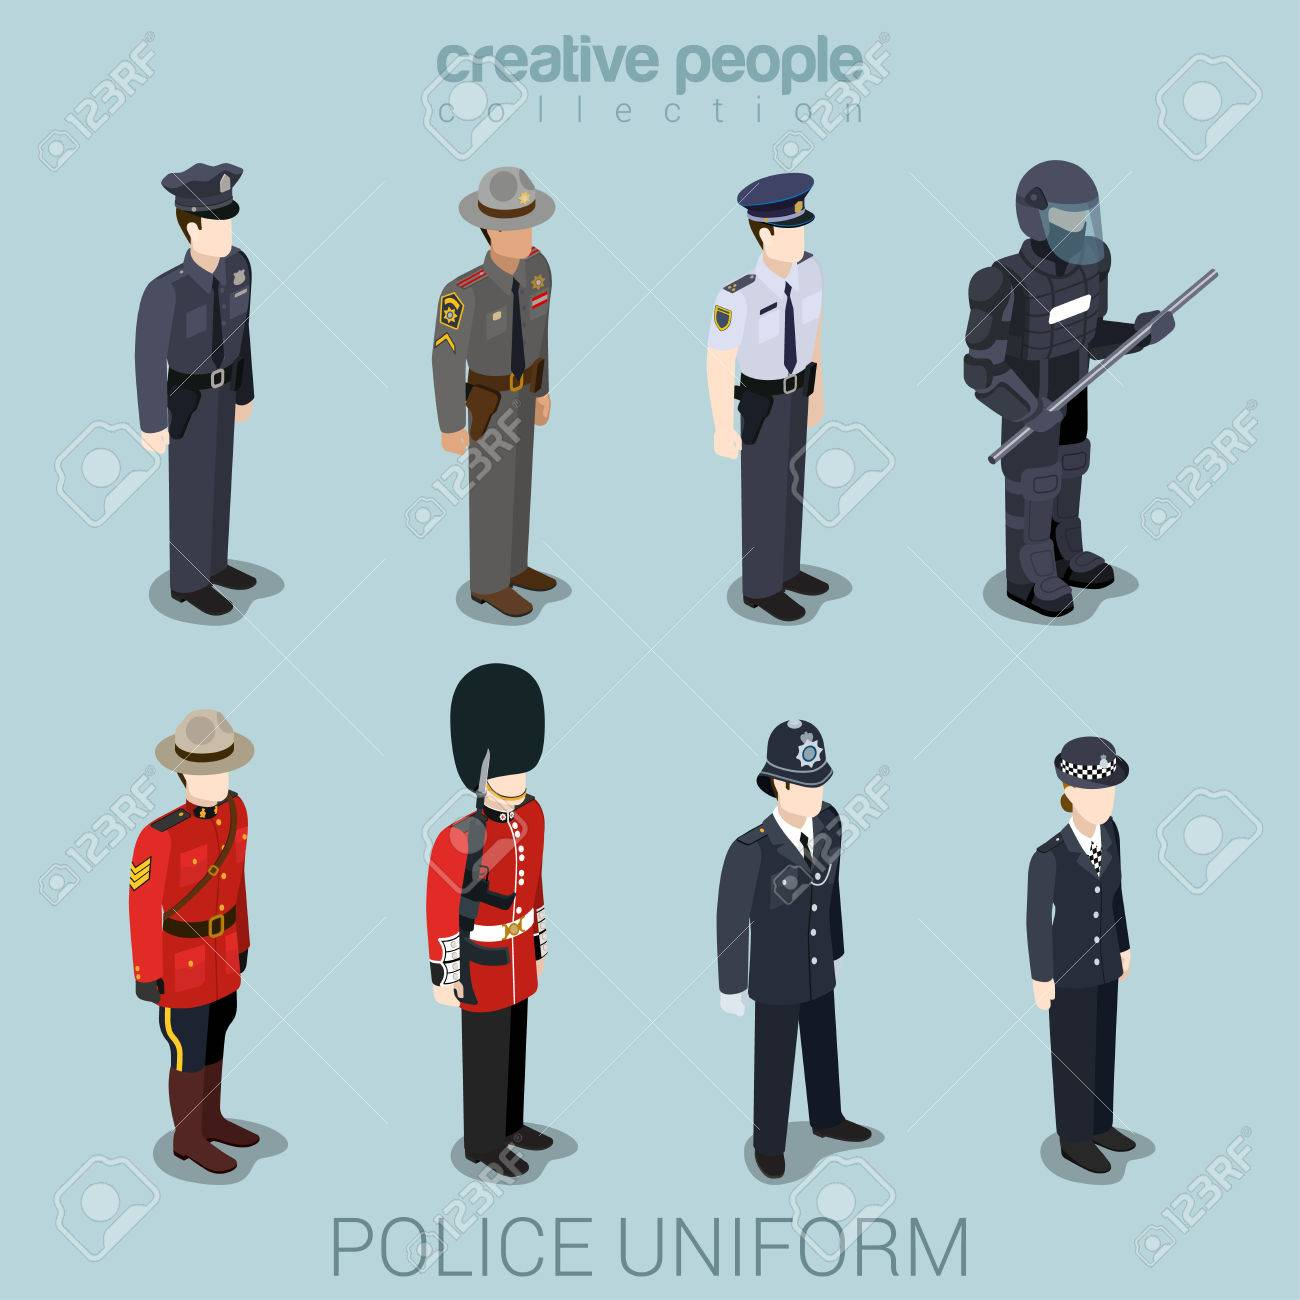 Police officer commander patrol SWAT people in uniform flat isometric 3d game avatar user profile icon vector illustration set. Creative people collection. Build your own world. Stock Vector - 48578748